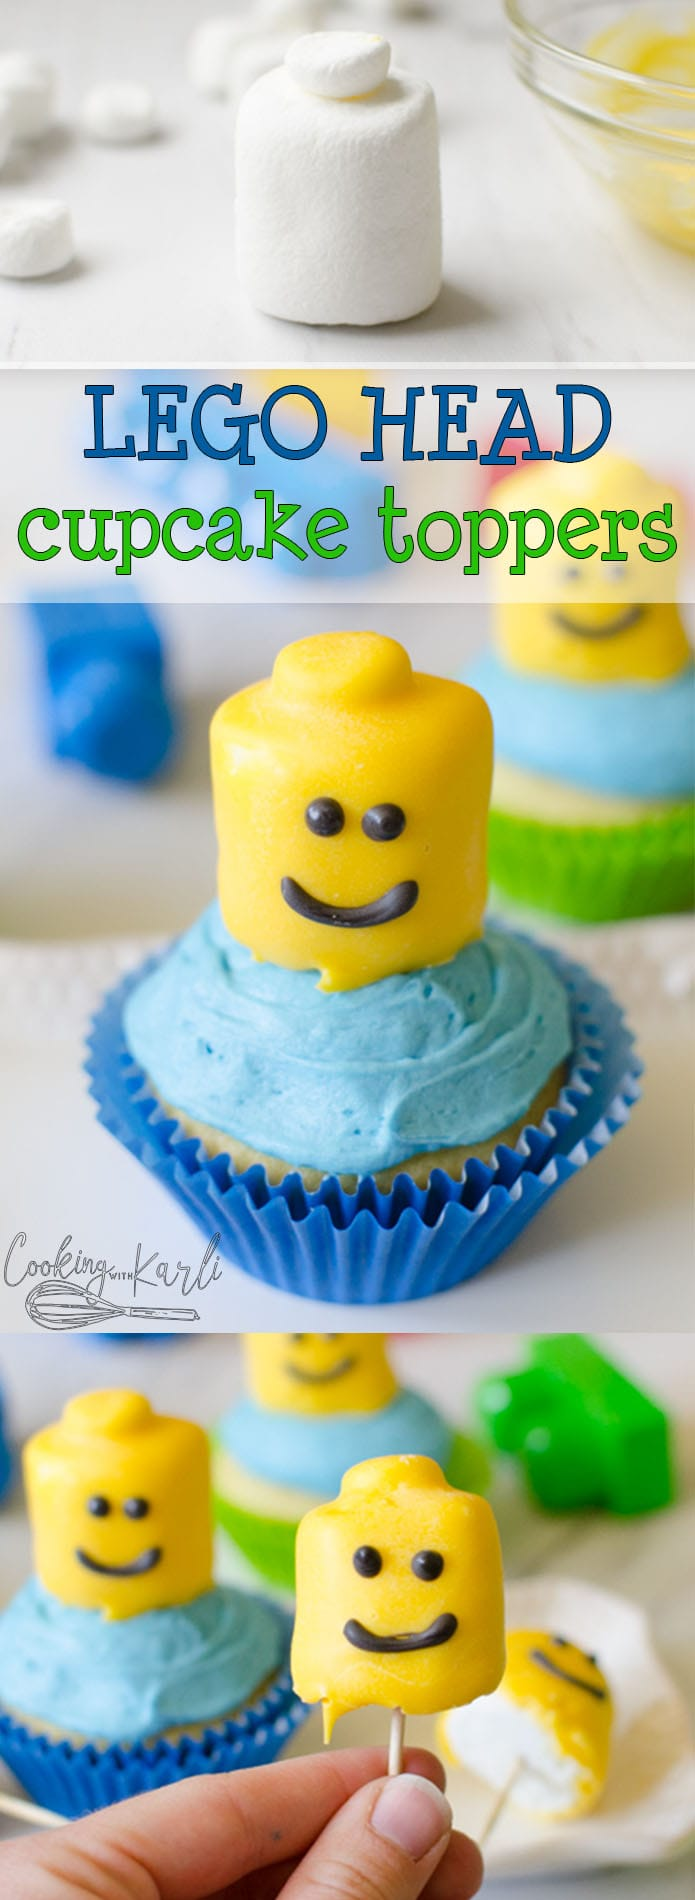 Lego Themed Birthday Cupcakes Are Super Cute And So Easy To Make The Heads